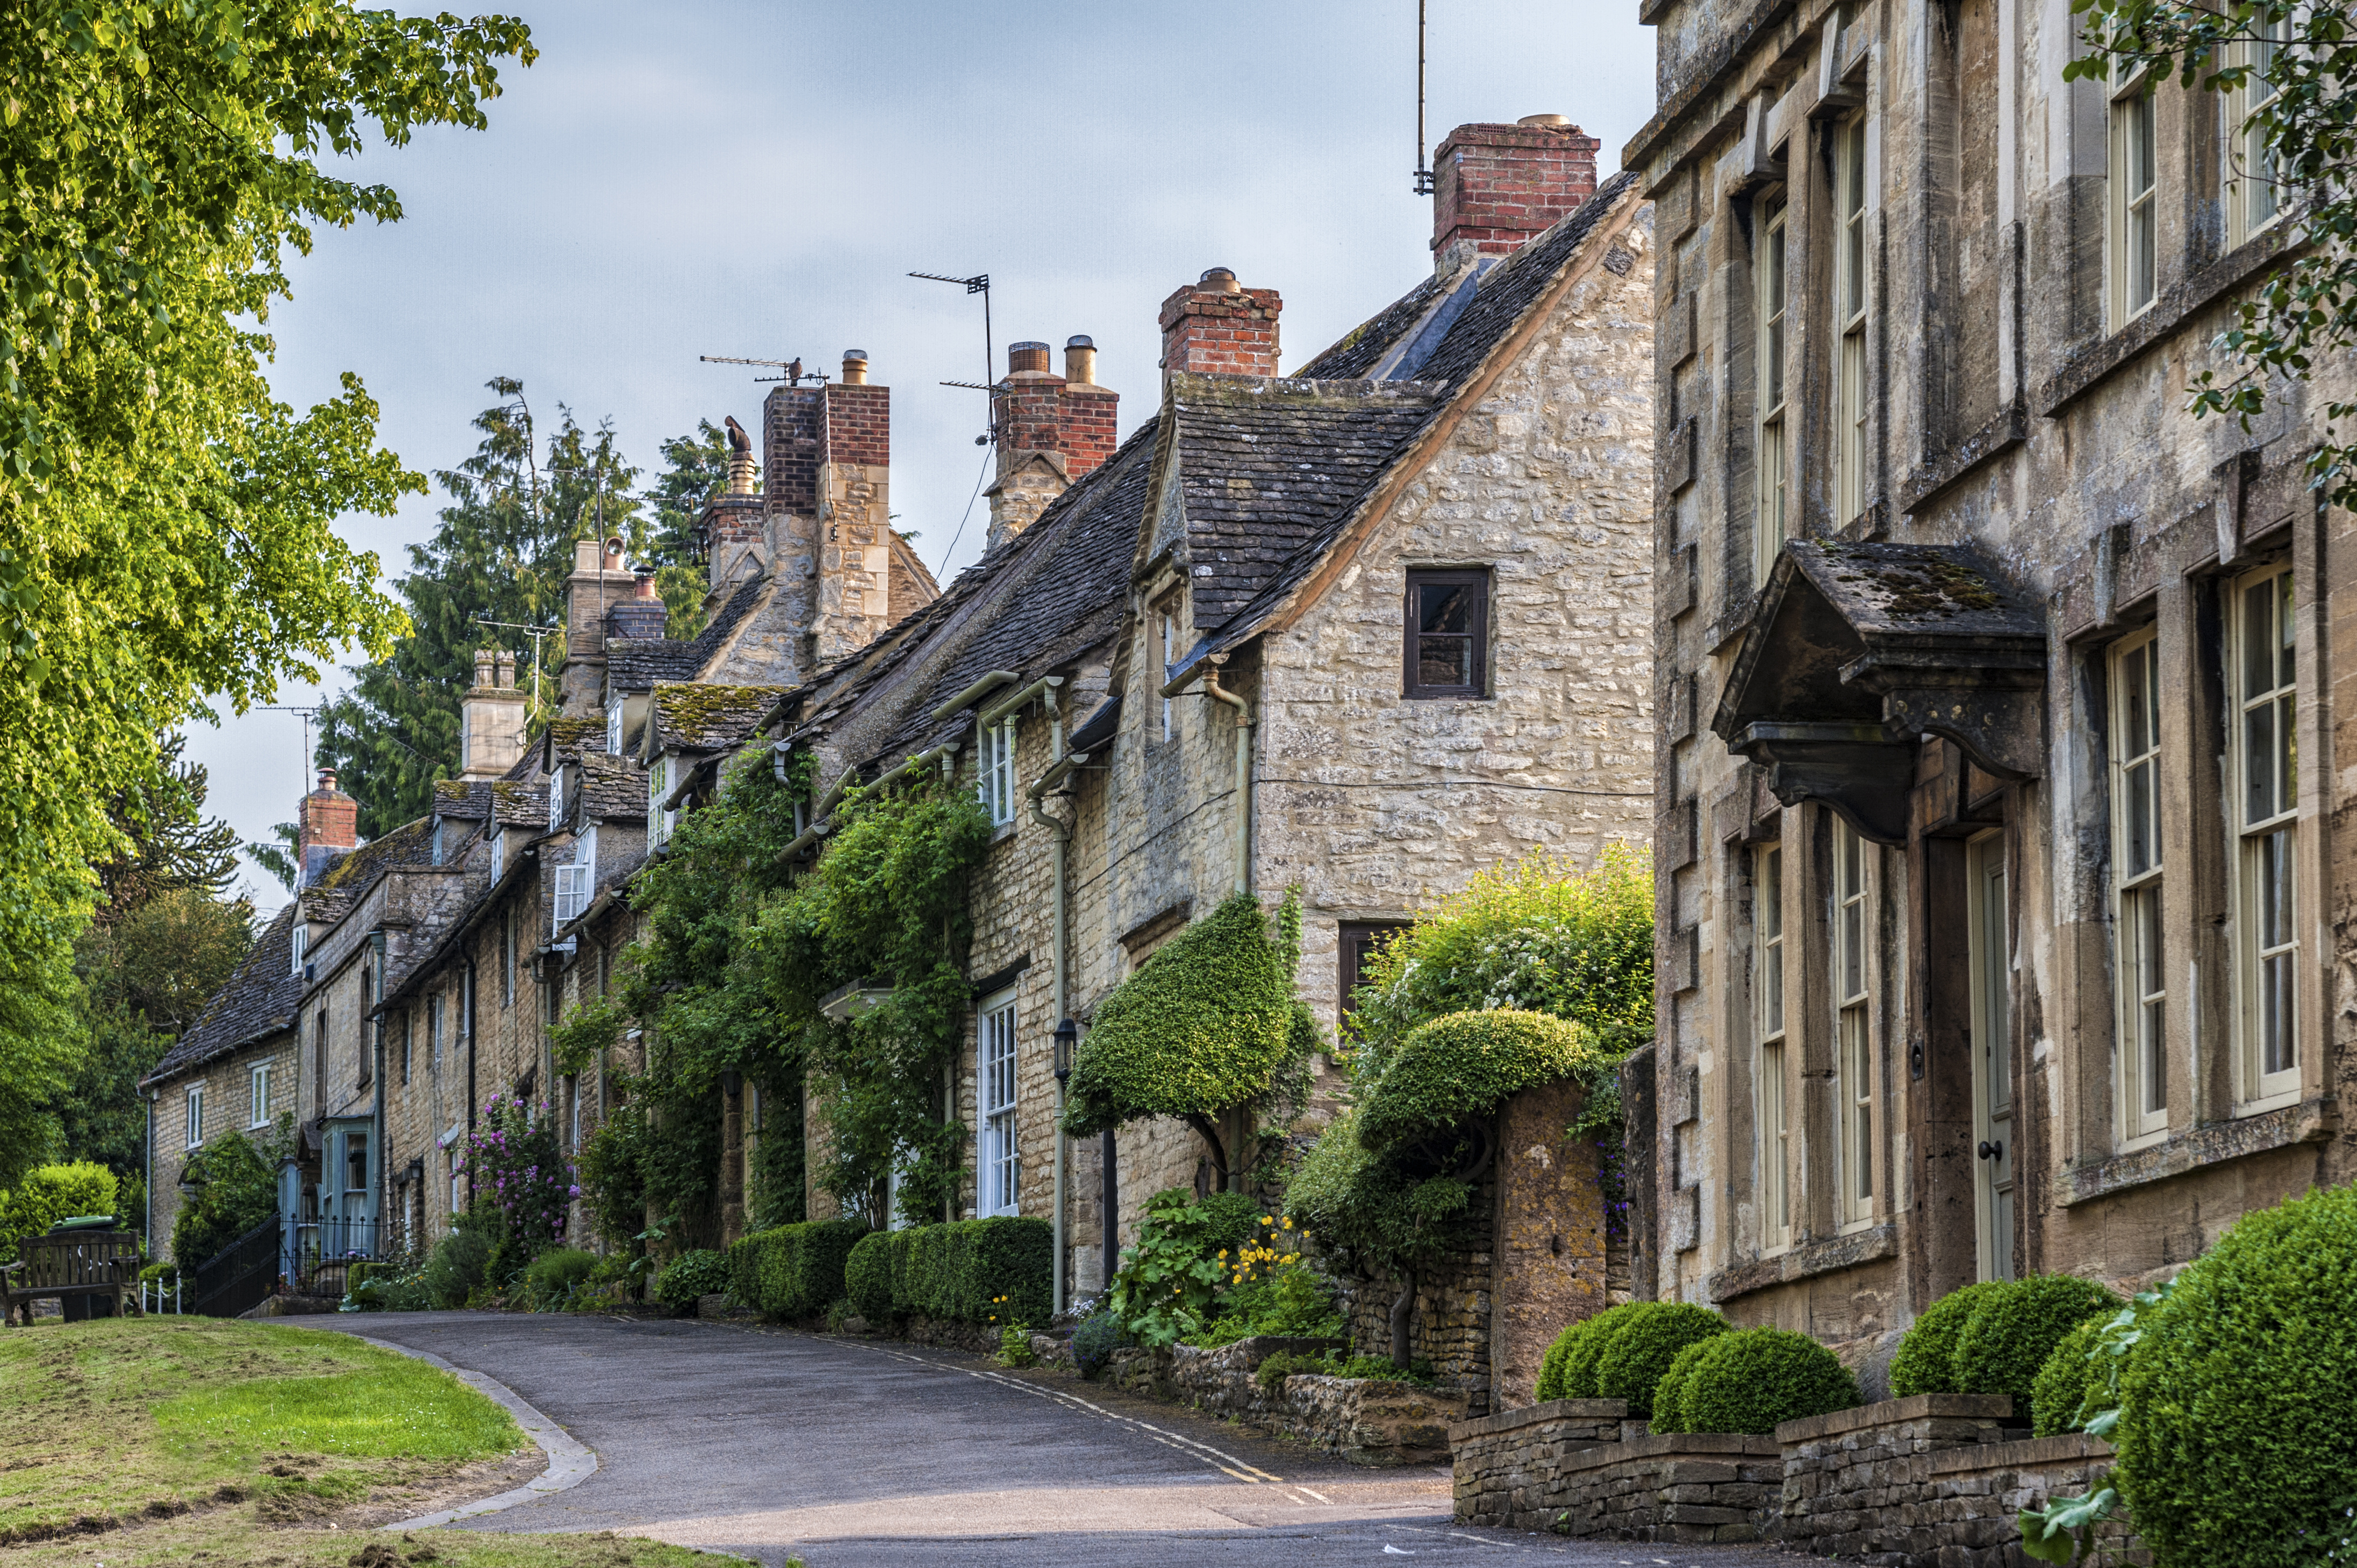 medieval English village with stone built homes